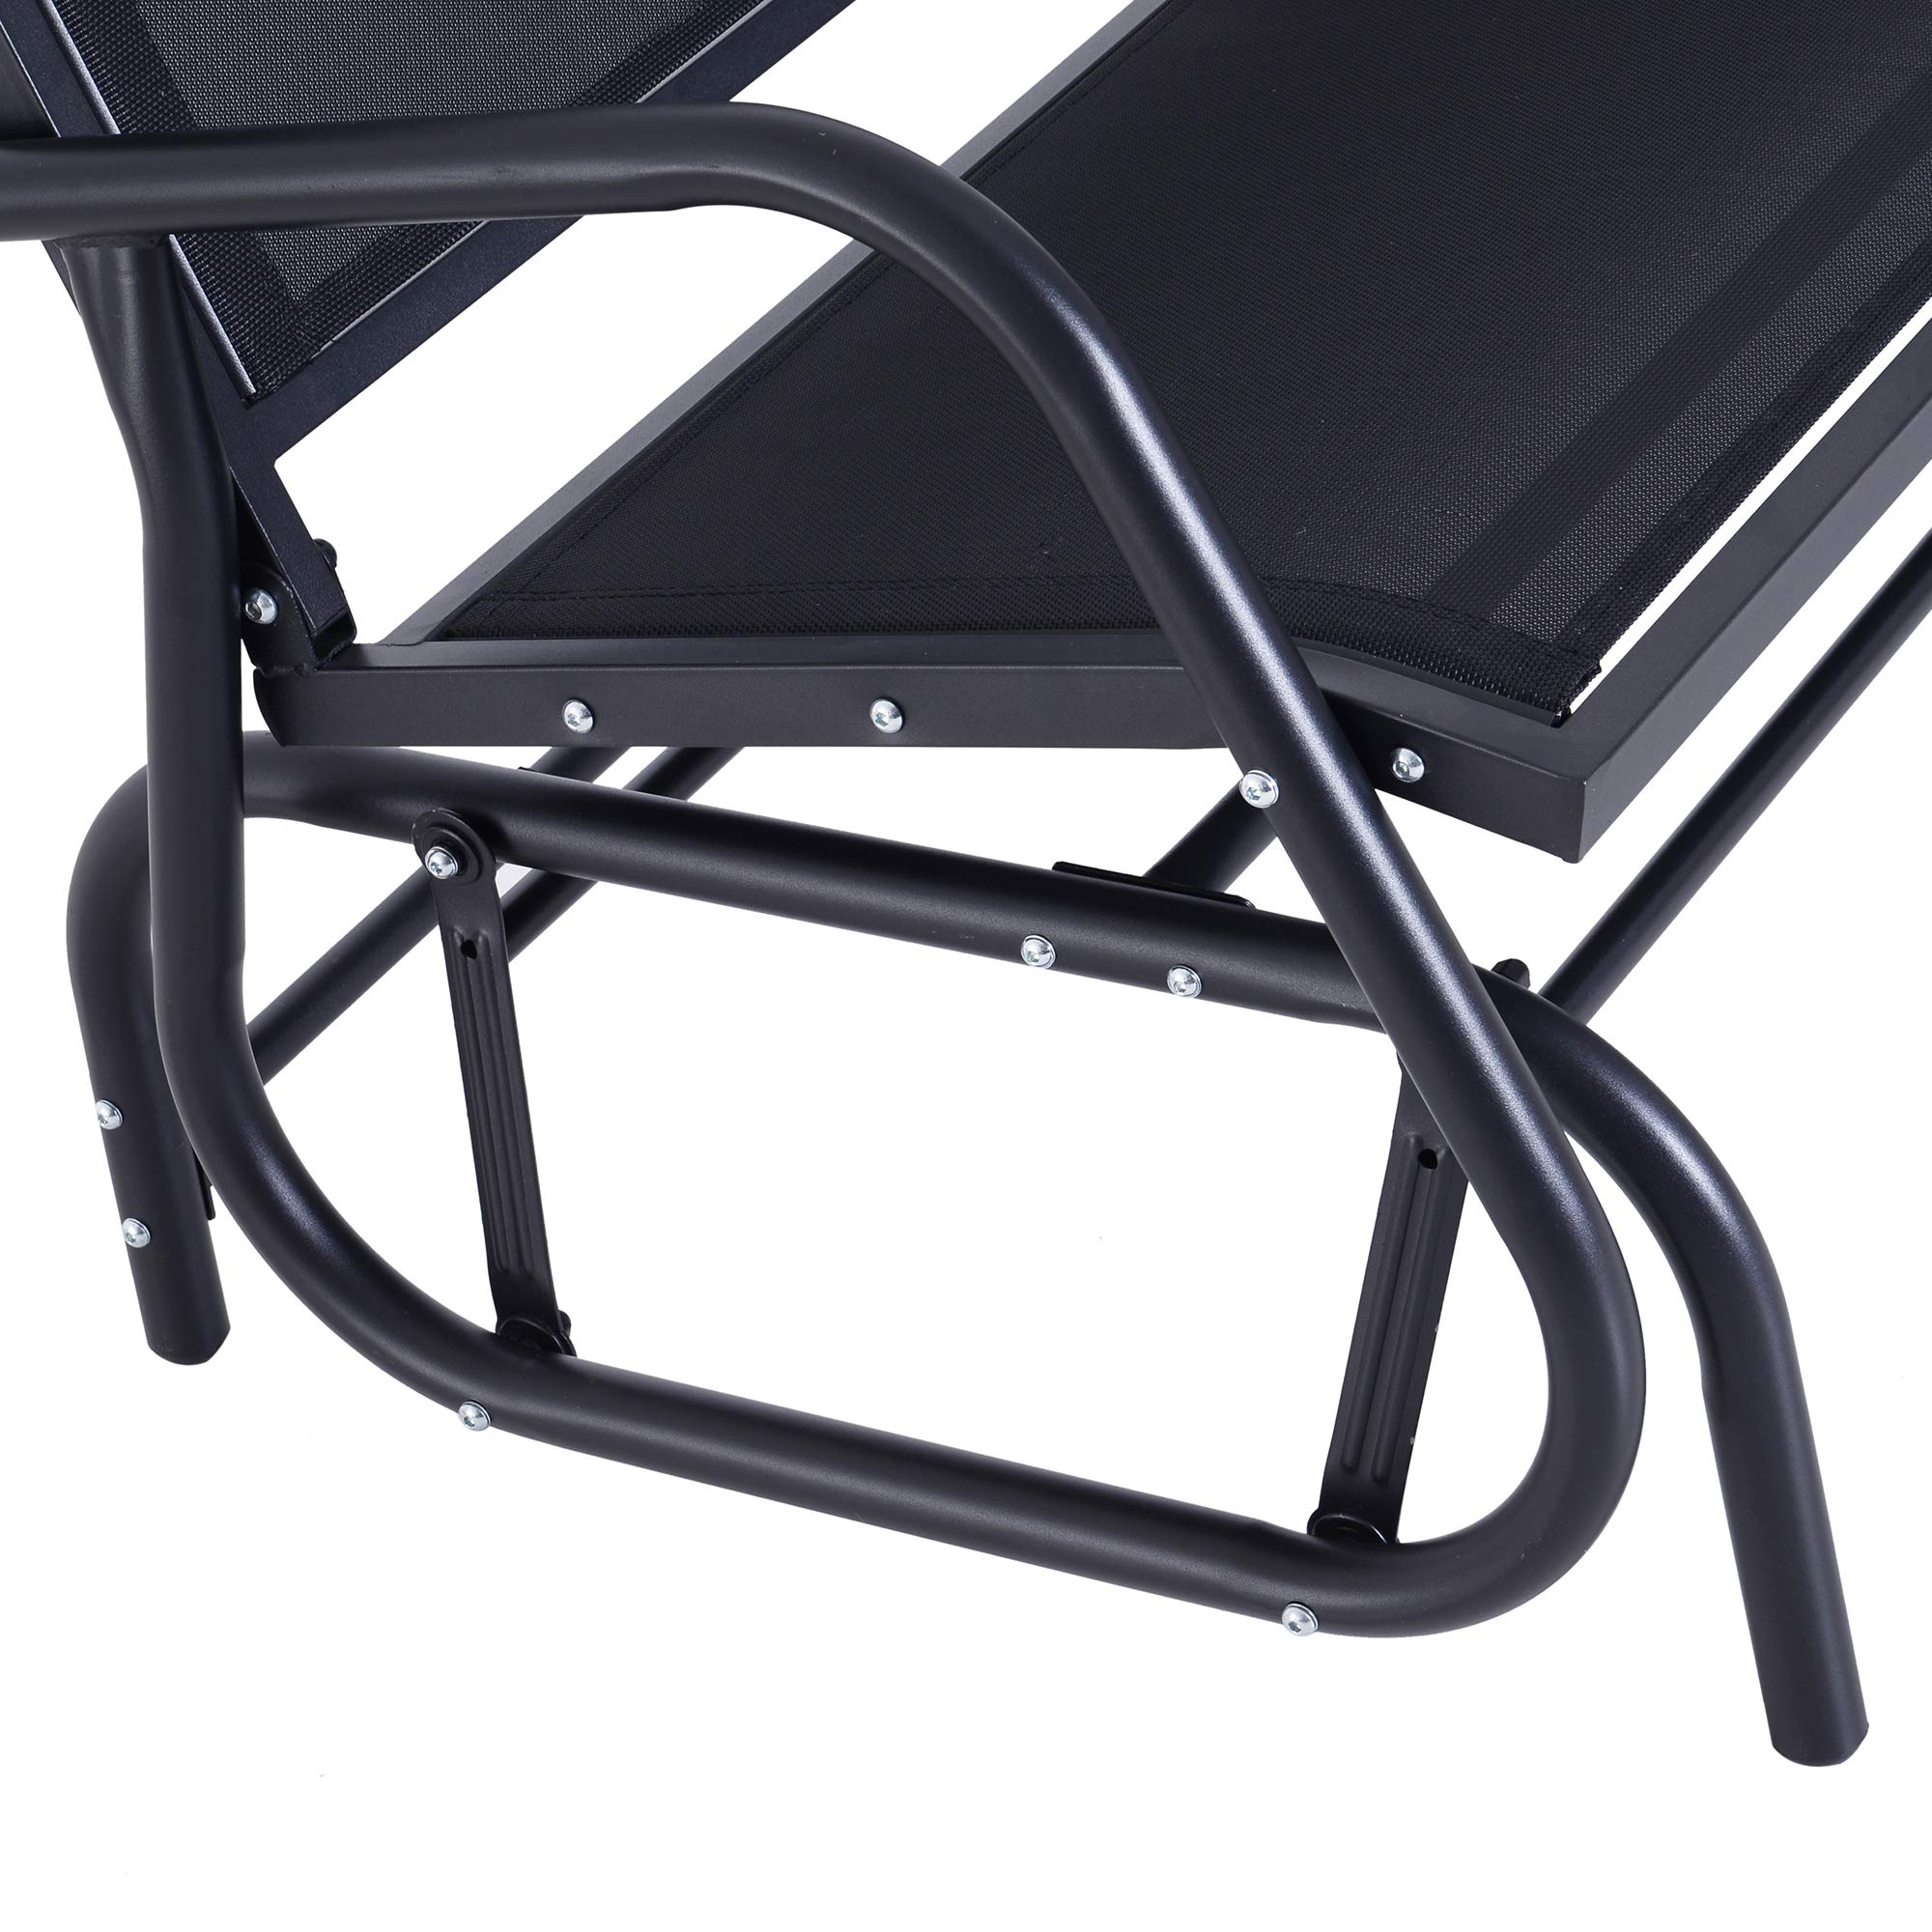 Outsunny 48'' Outdoor Patio Swing Glider Bench Chair - Dark Gray by Outsunny (Image #8)